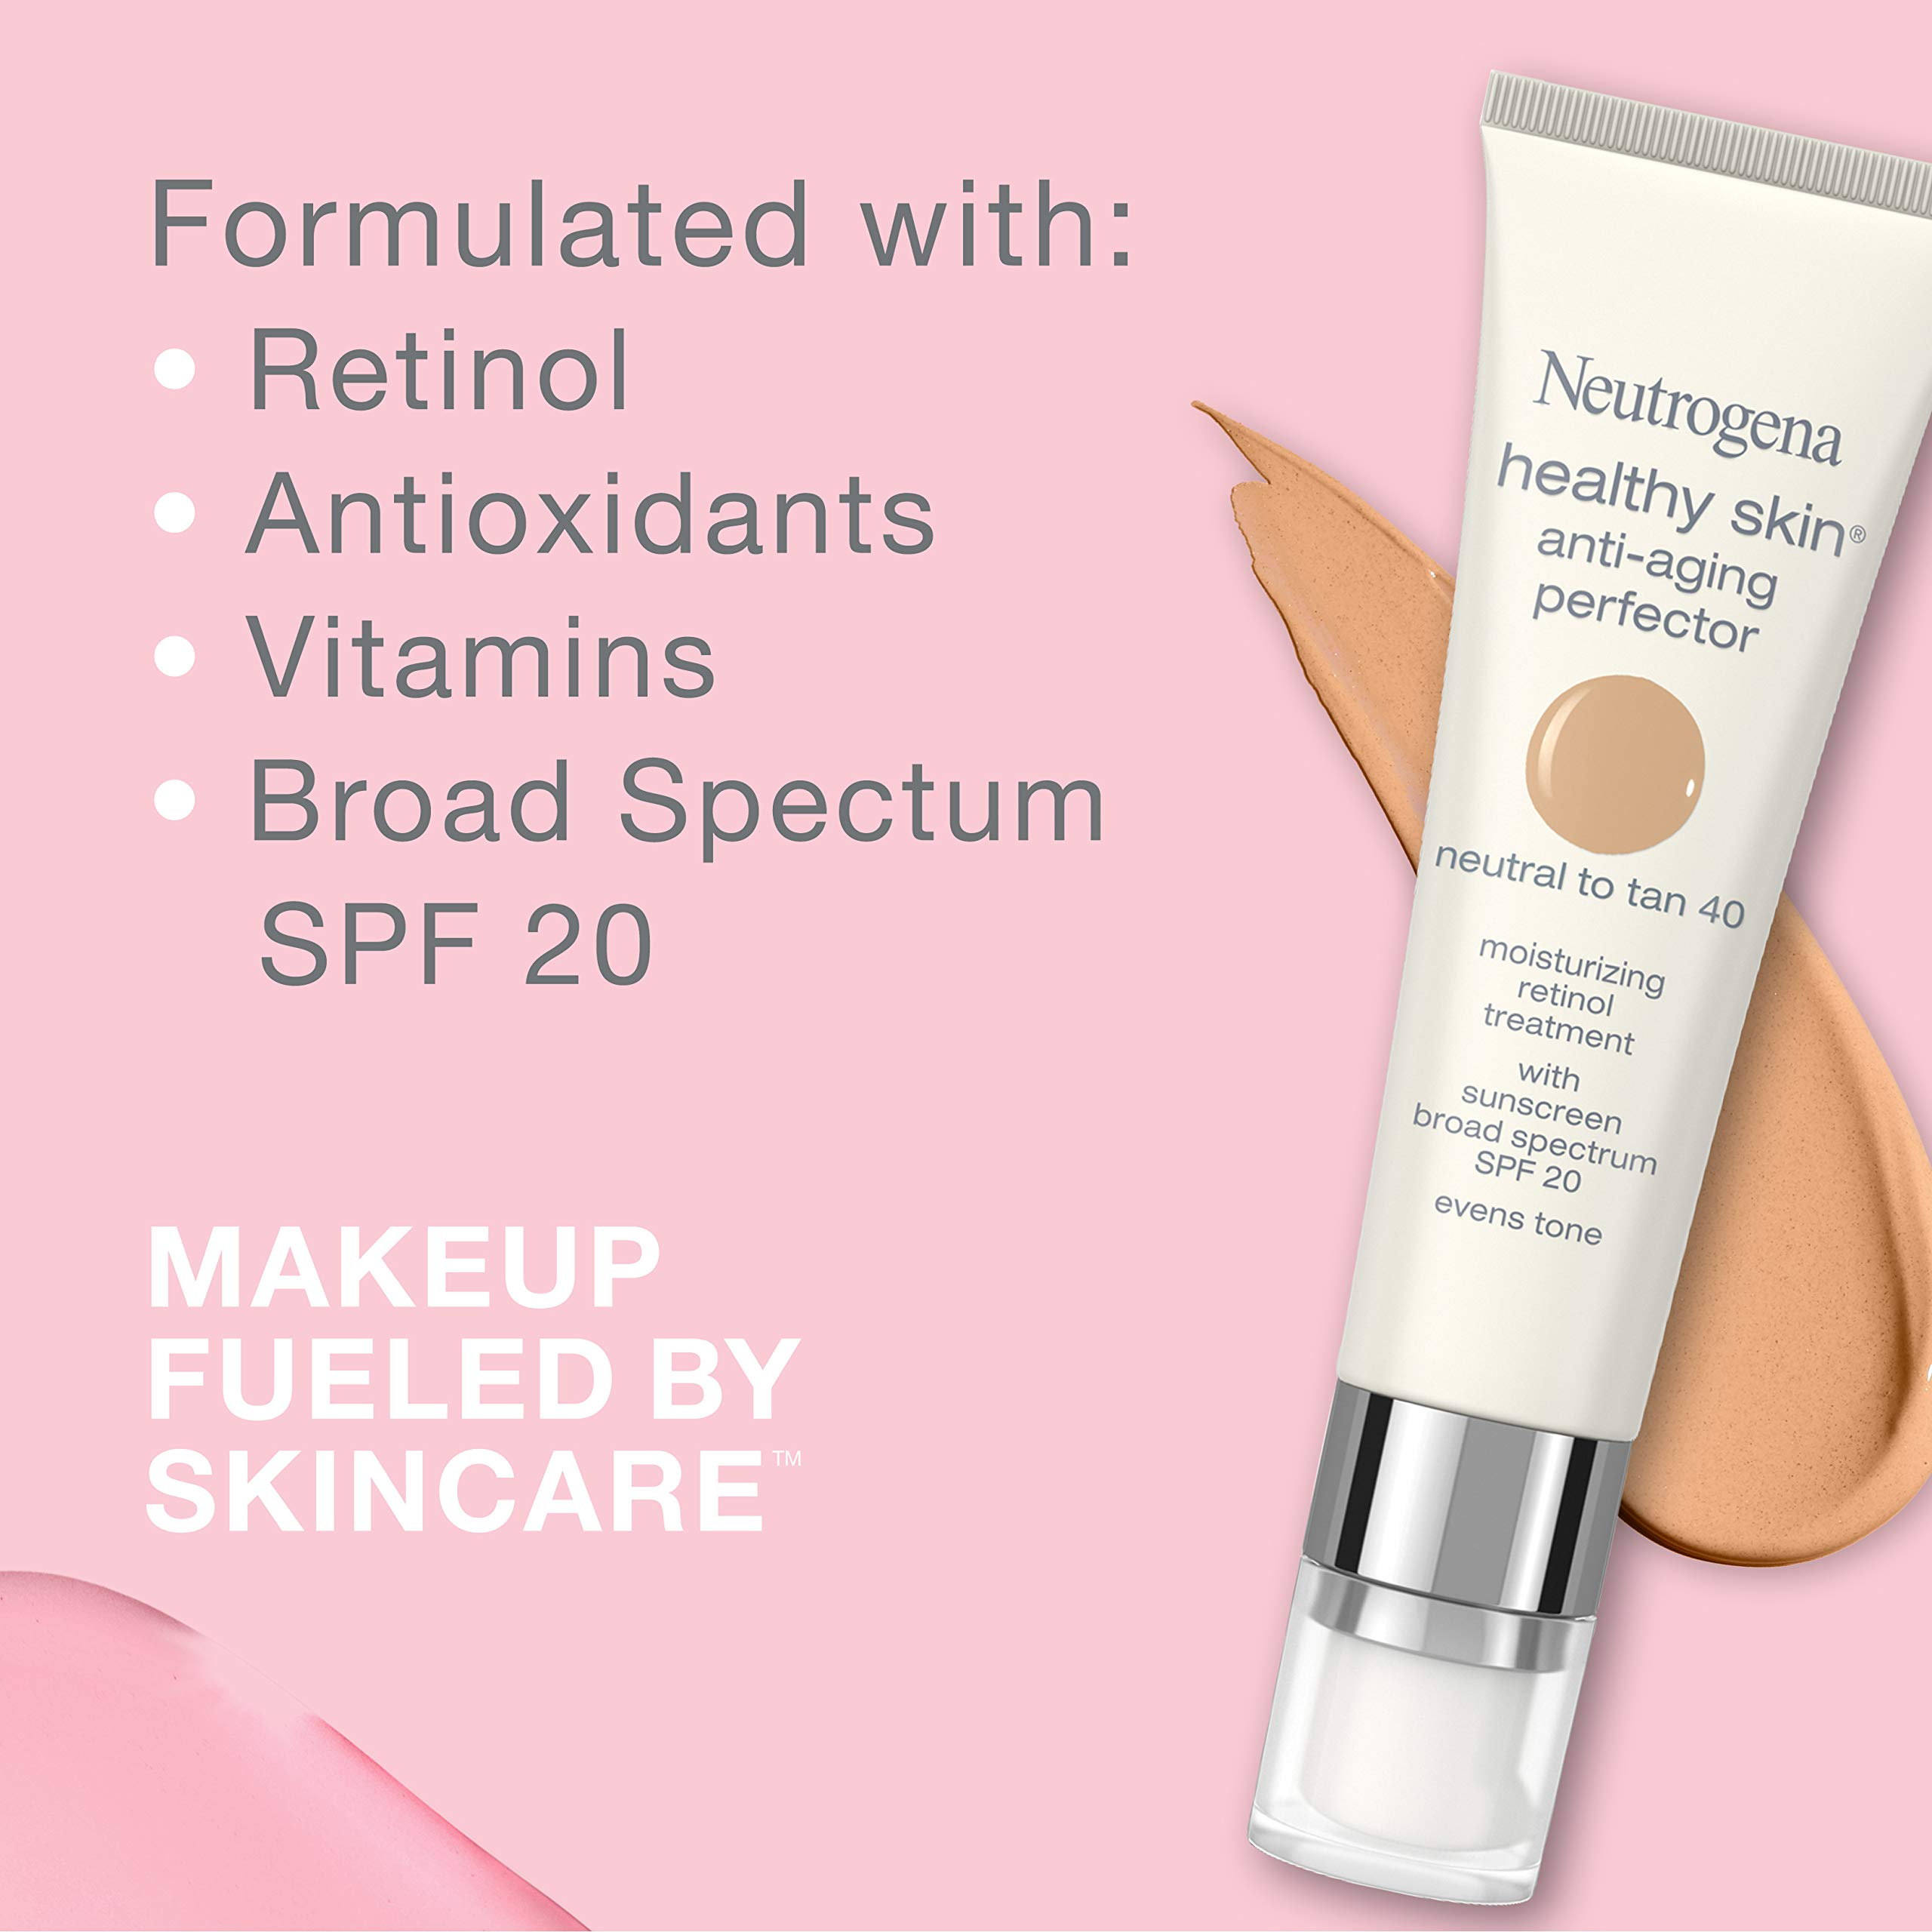 Neutrogena Healthy Skin Anti-Aging Perfector Tinted Facial Moisturizer and Retinol Treatment with Broad Spectrum SPF 20 Sunscreen